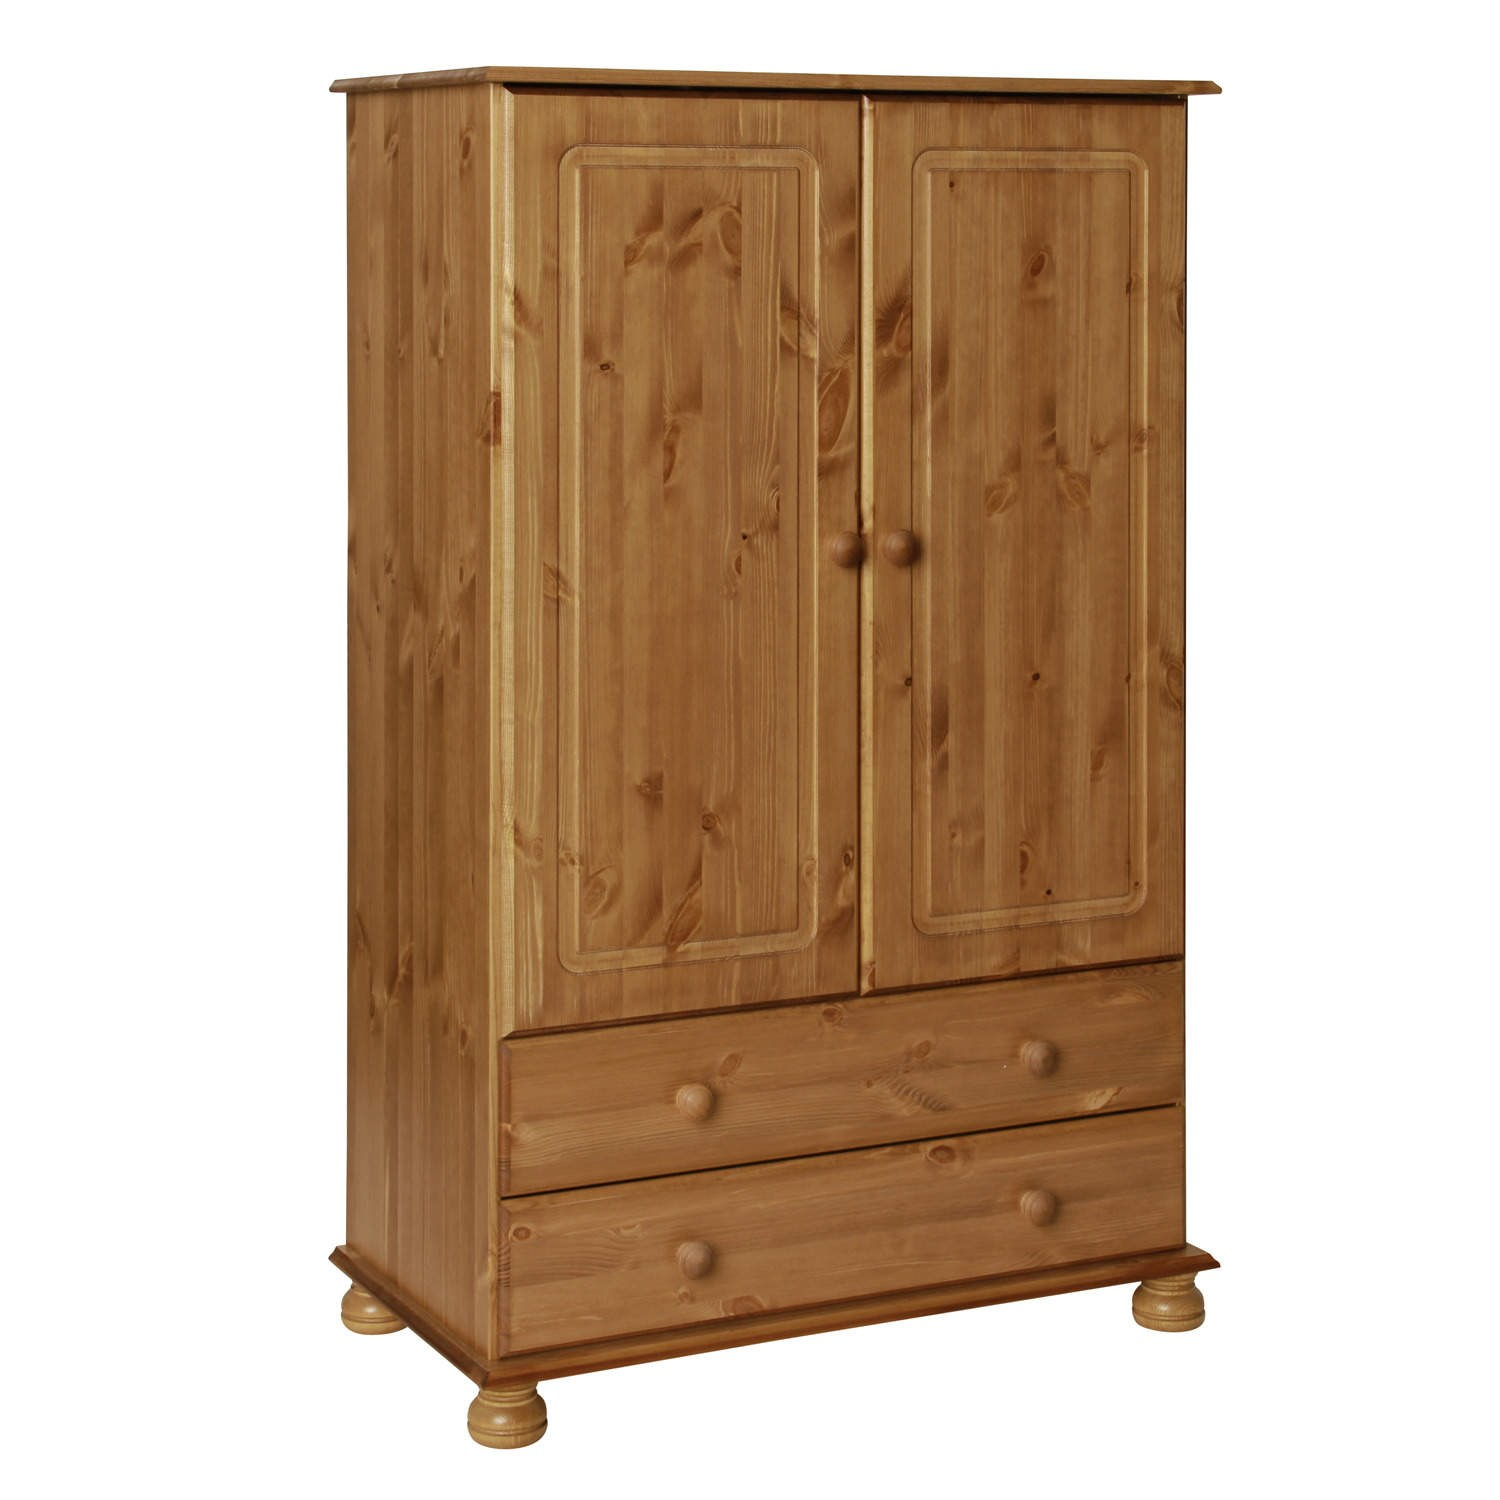 Copenhagen 2 door 2 drawer combi short wardrobe in pine Short wardrobe with drawers